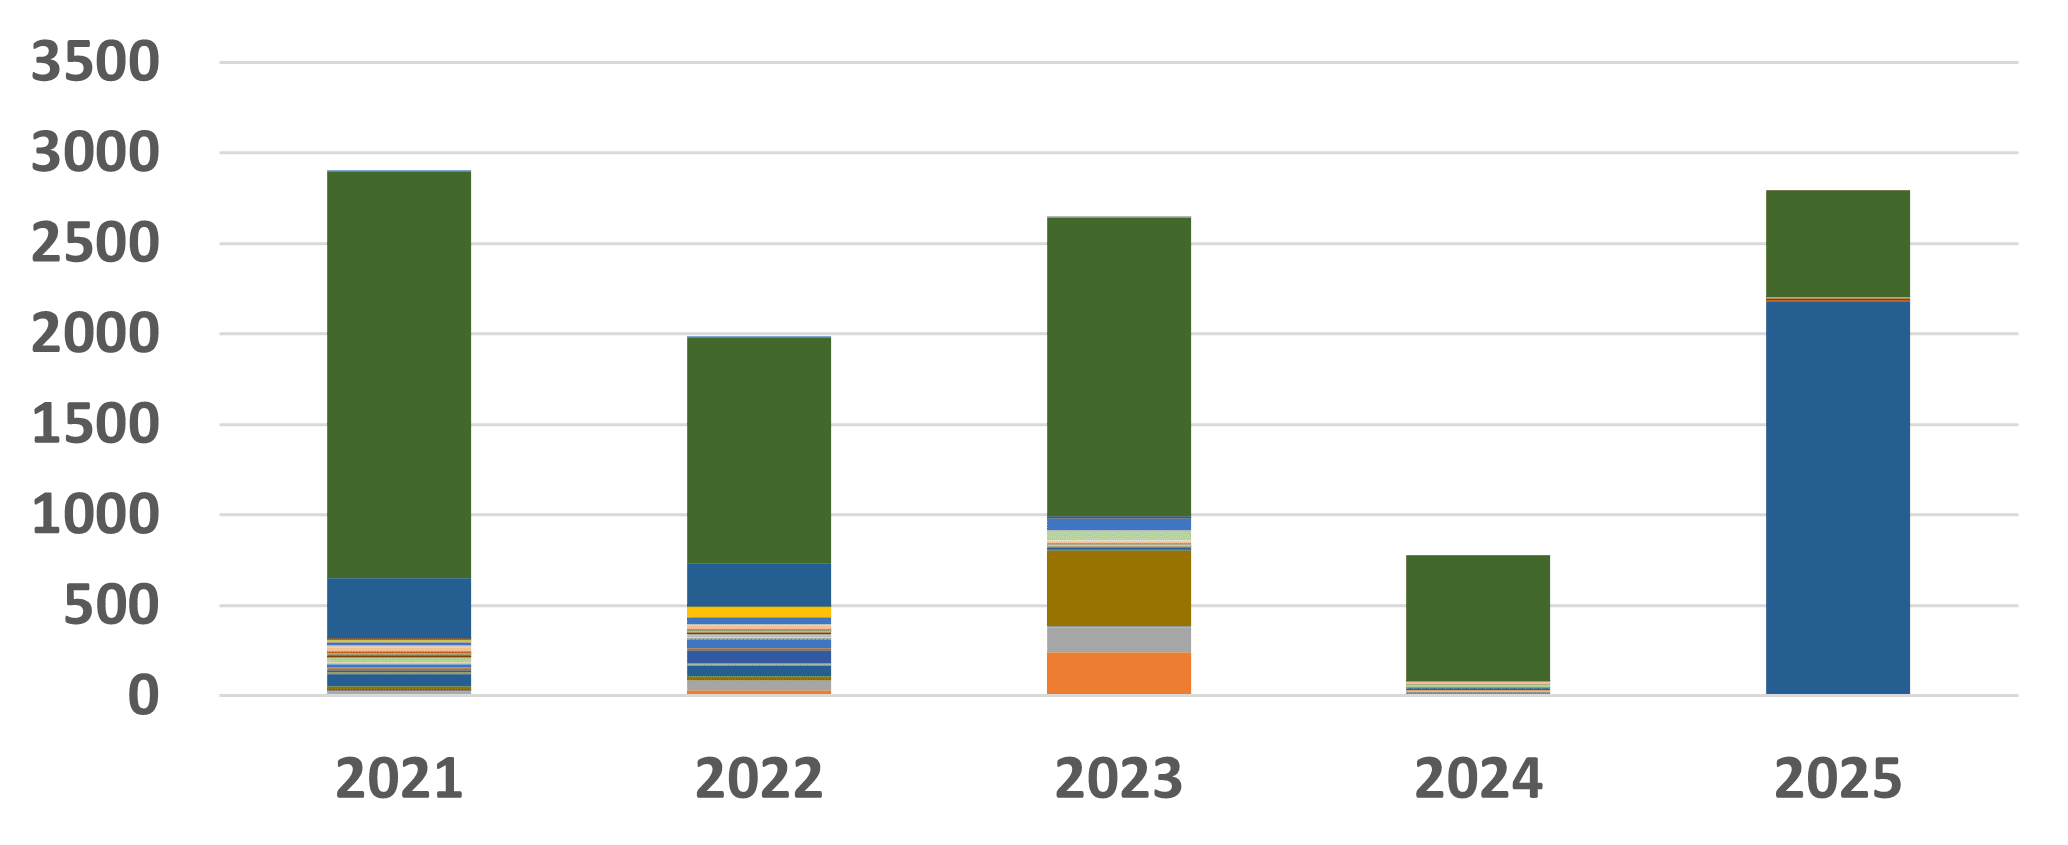 2021 + Future Spacecraft Launch Intent by Owner Country. Source: Seradata SpaceTrak Database